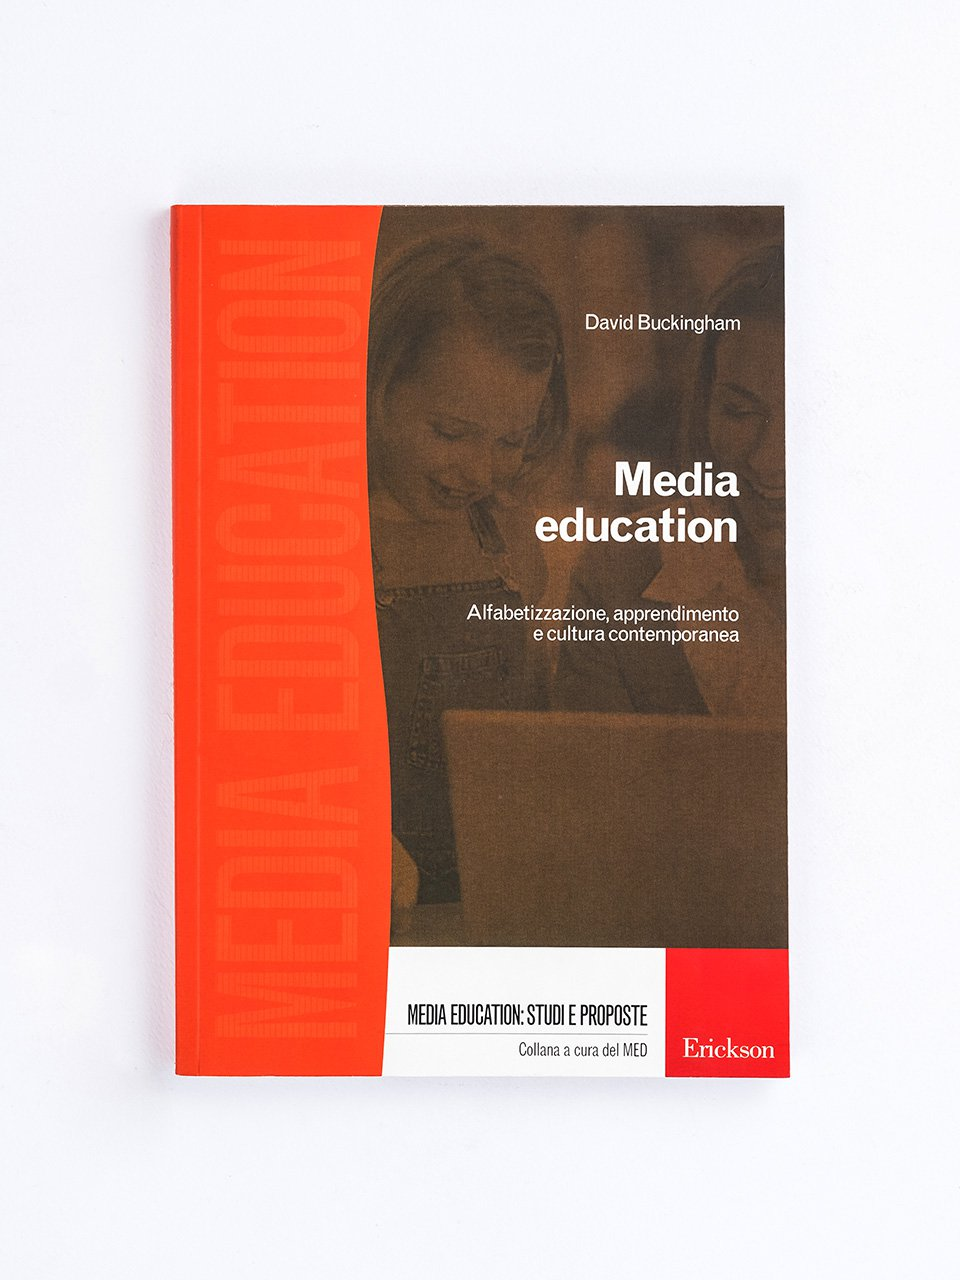 Media education - Alfabetizzazione, apprendimento e cultura contemporanea - Competenze in azione! - Classe quarta - Libri - Erickson